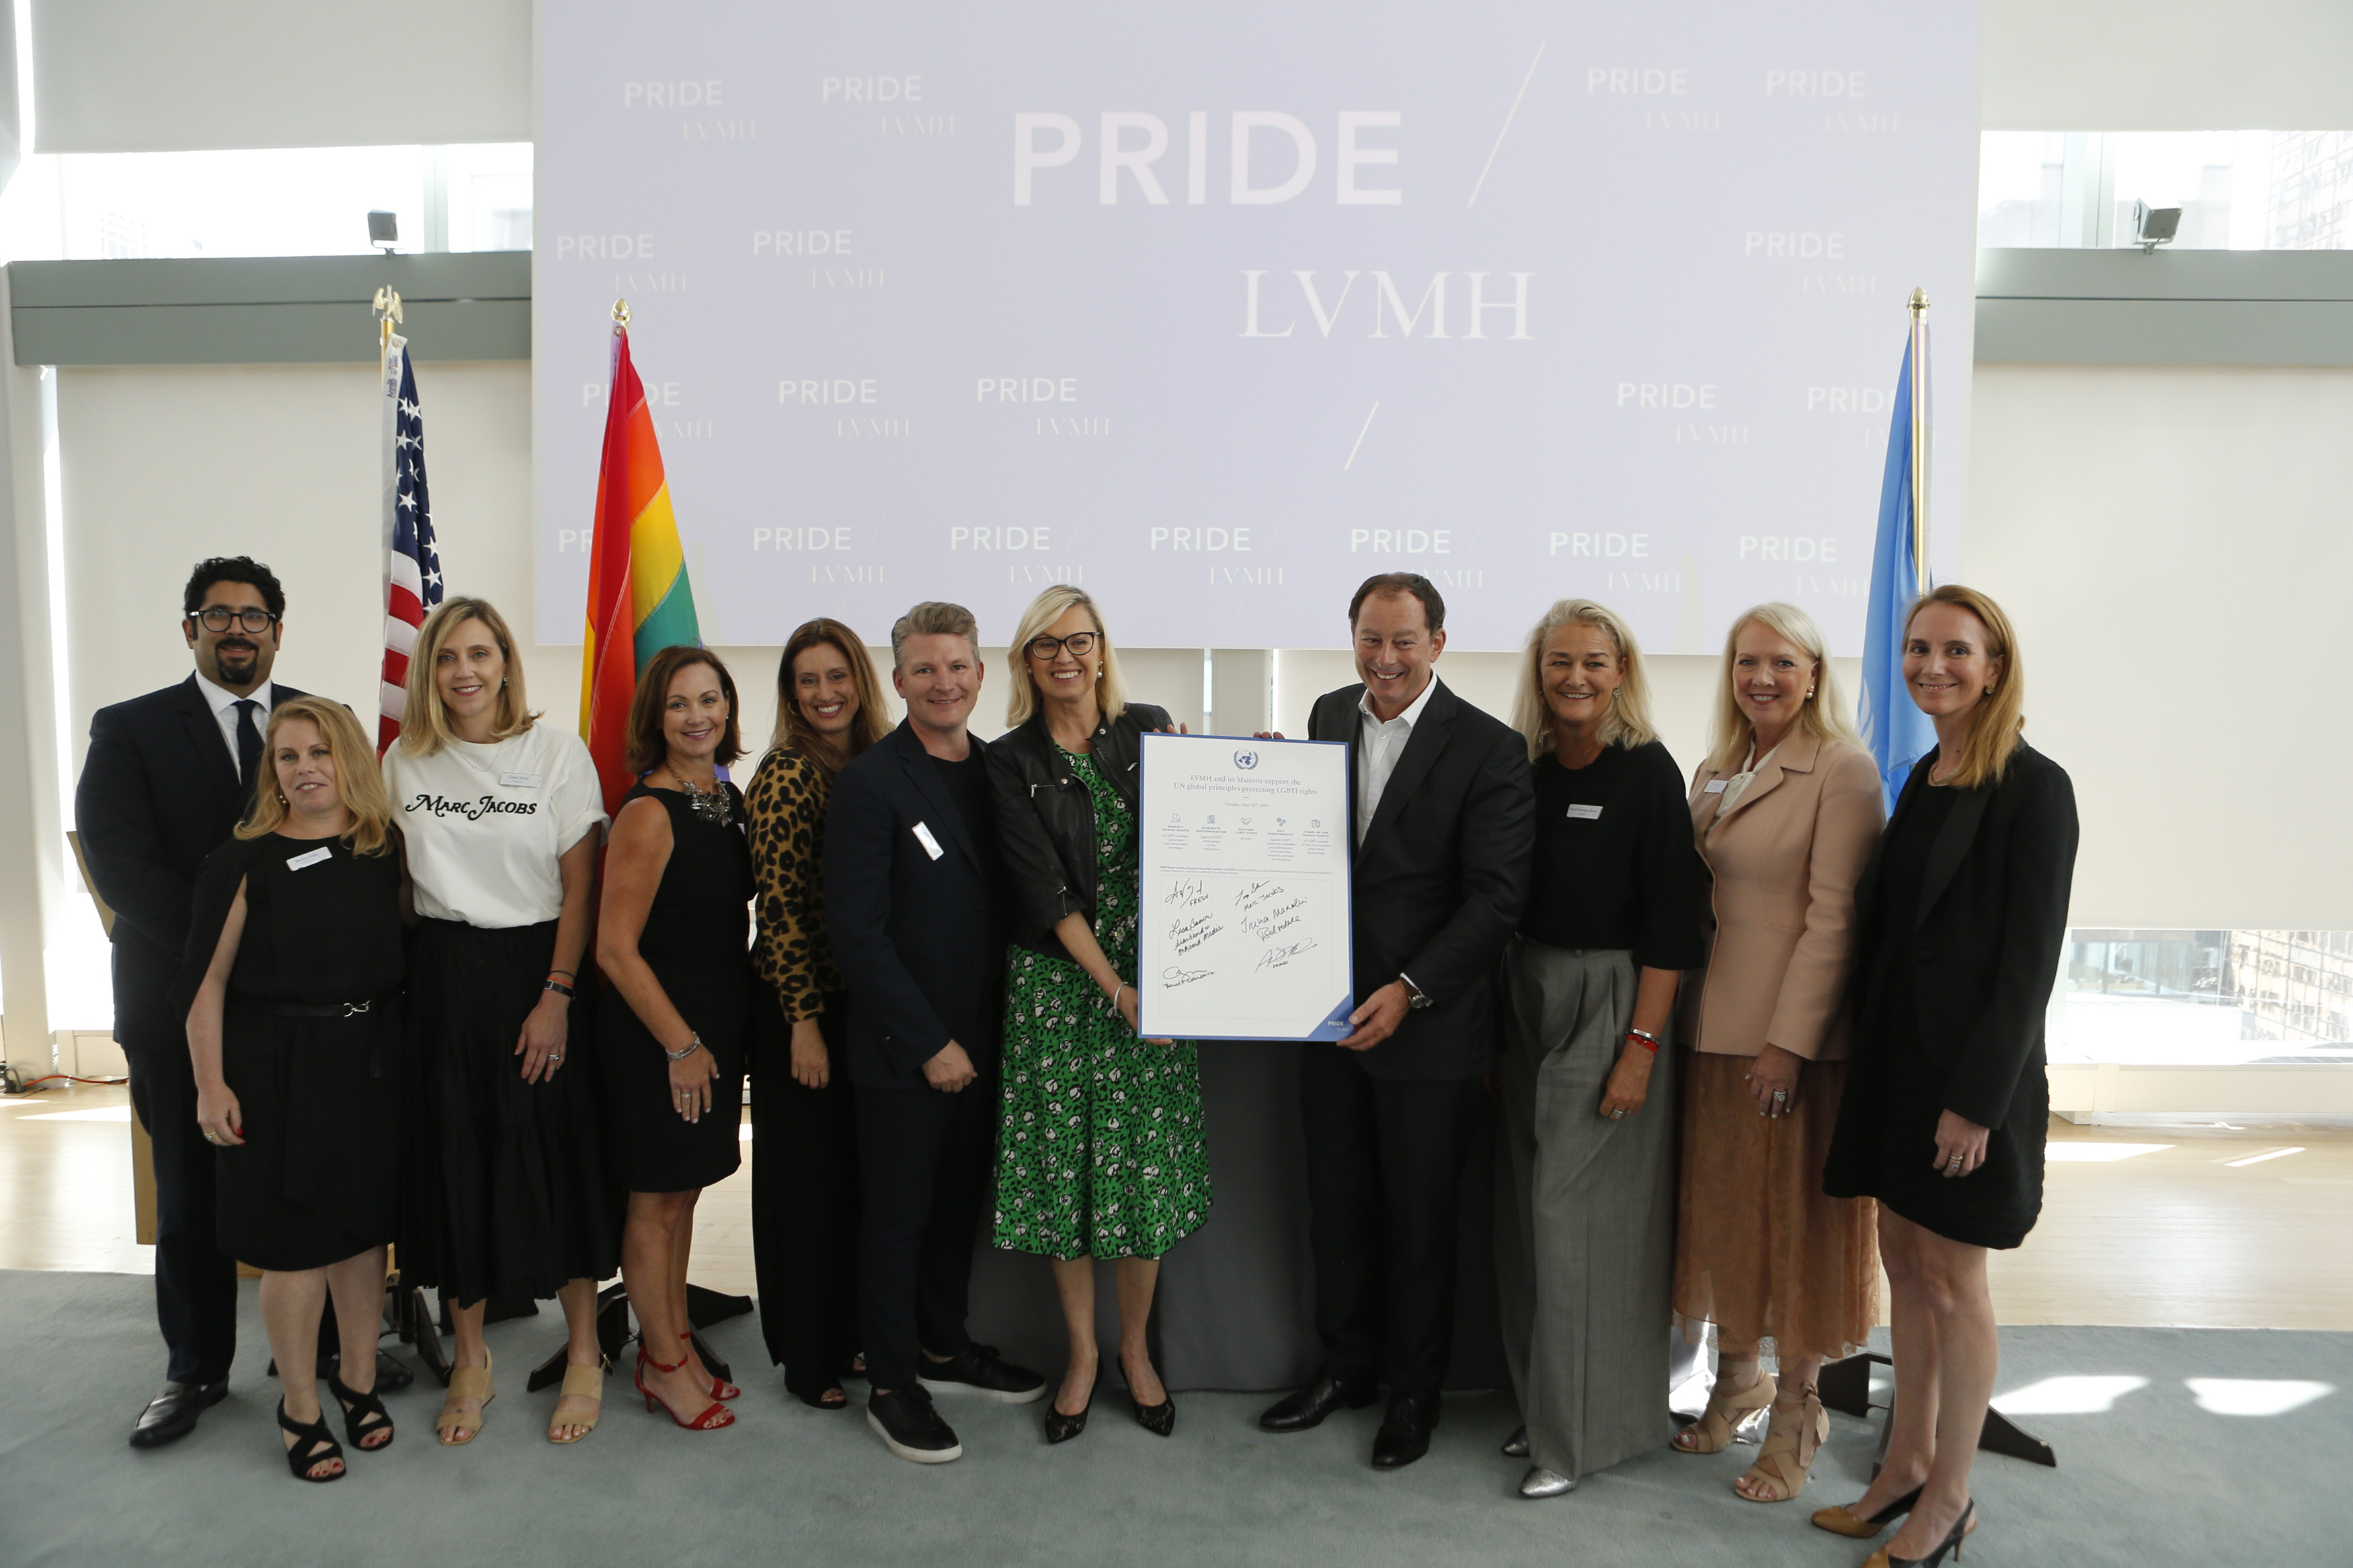 On the occasion of World Pride Month, LVMH and Maisons' US executives sign the United Nations Standards of Conduct, joining the fight against LGBTI discrimination.